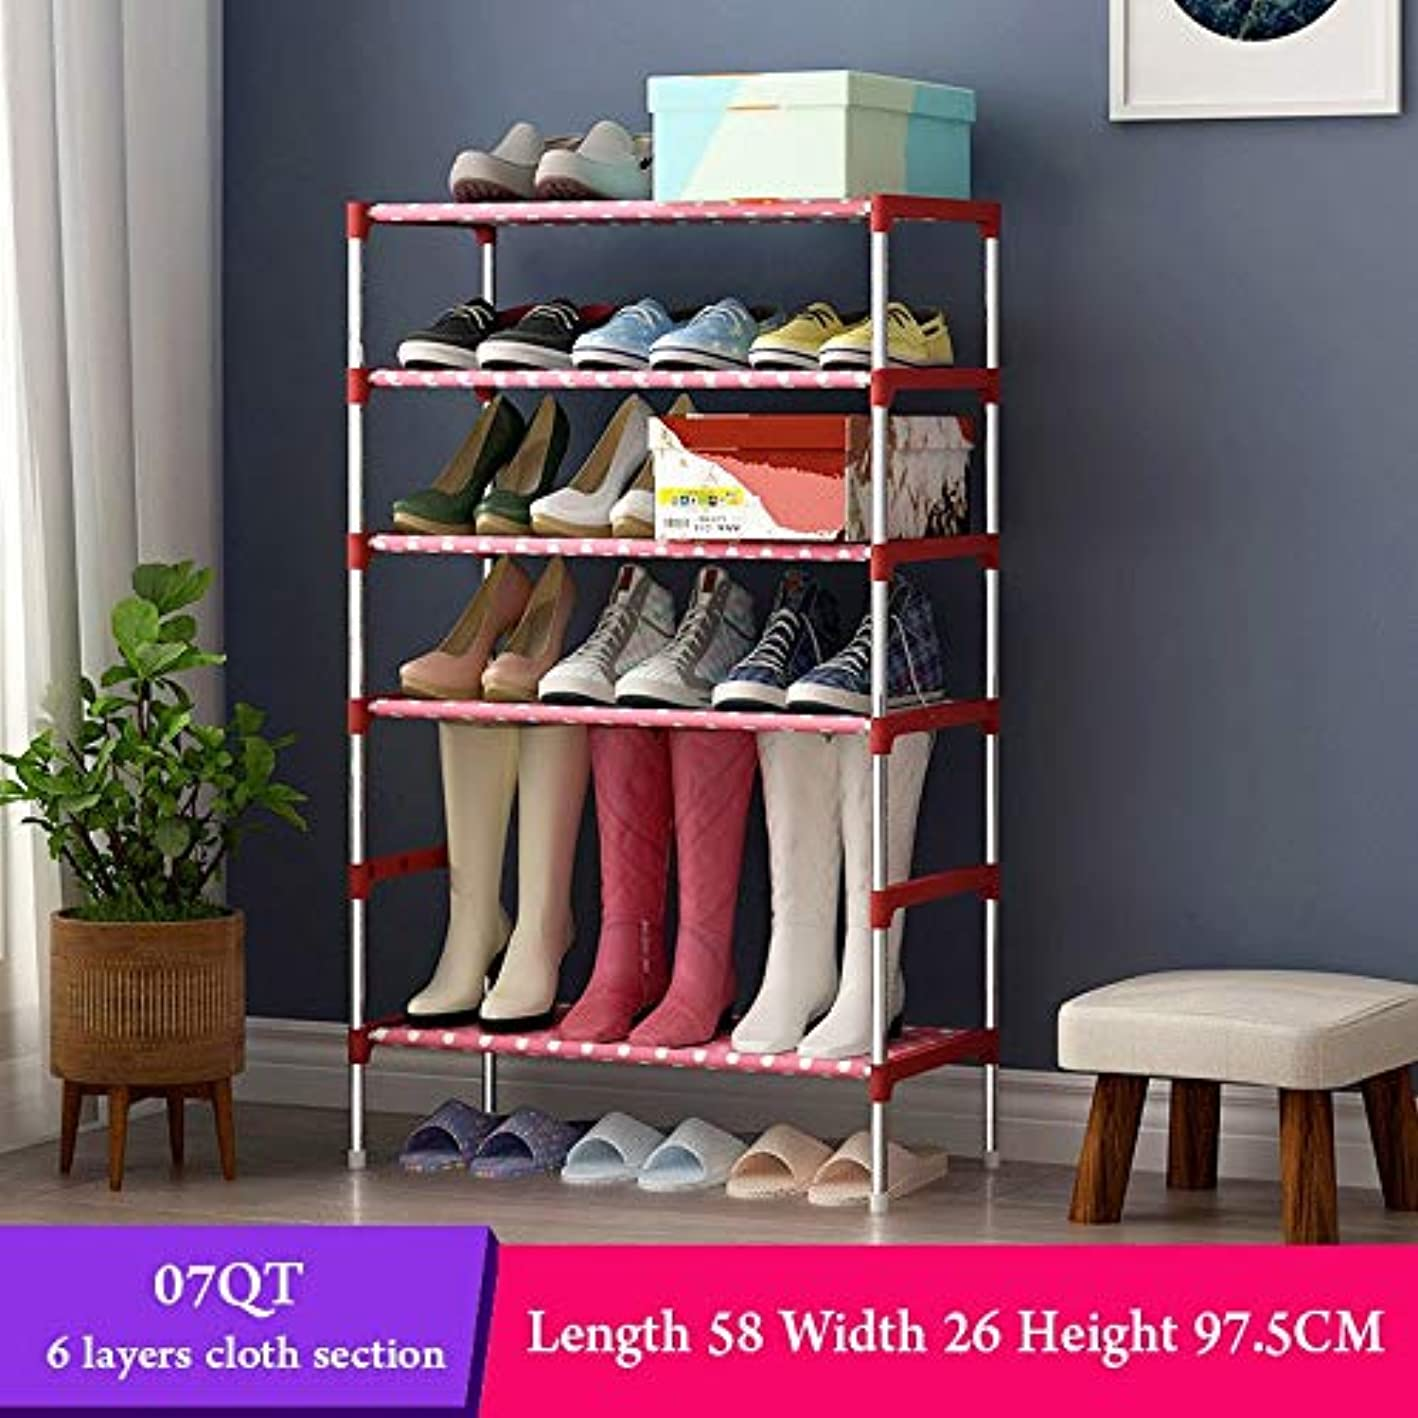 ONE FIVE DAY TOP Sale Multi Layer Shoe Rack with handrail Galvanized Steel Pipe Shoe Cabinet Shoe Organizer Removable Shoe Storage for Home Furniture, Women, Men, Children